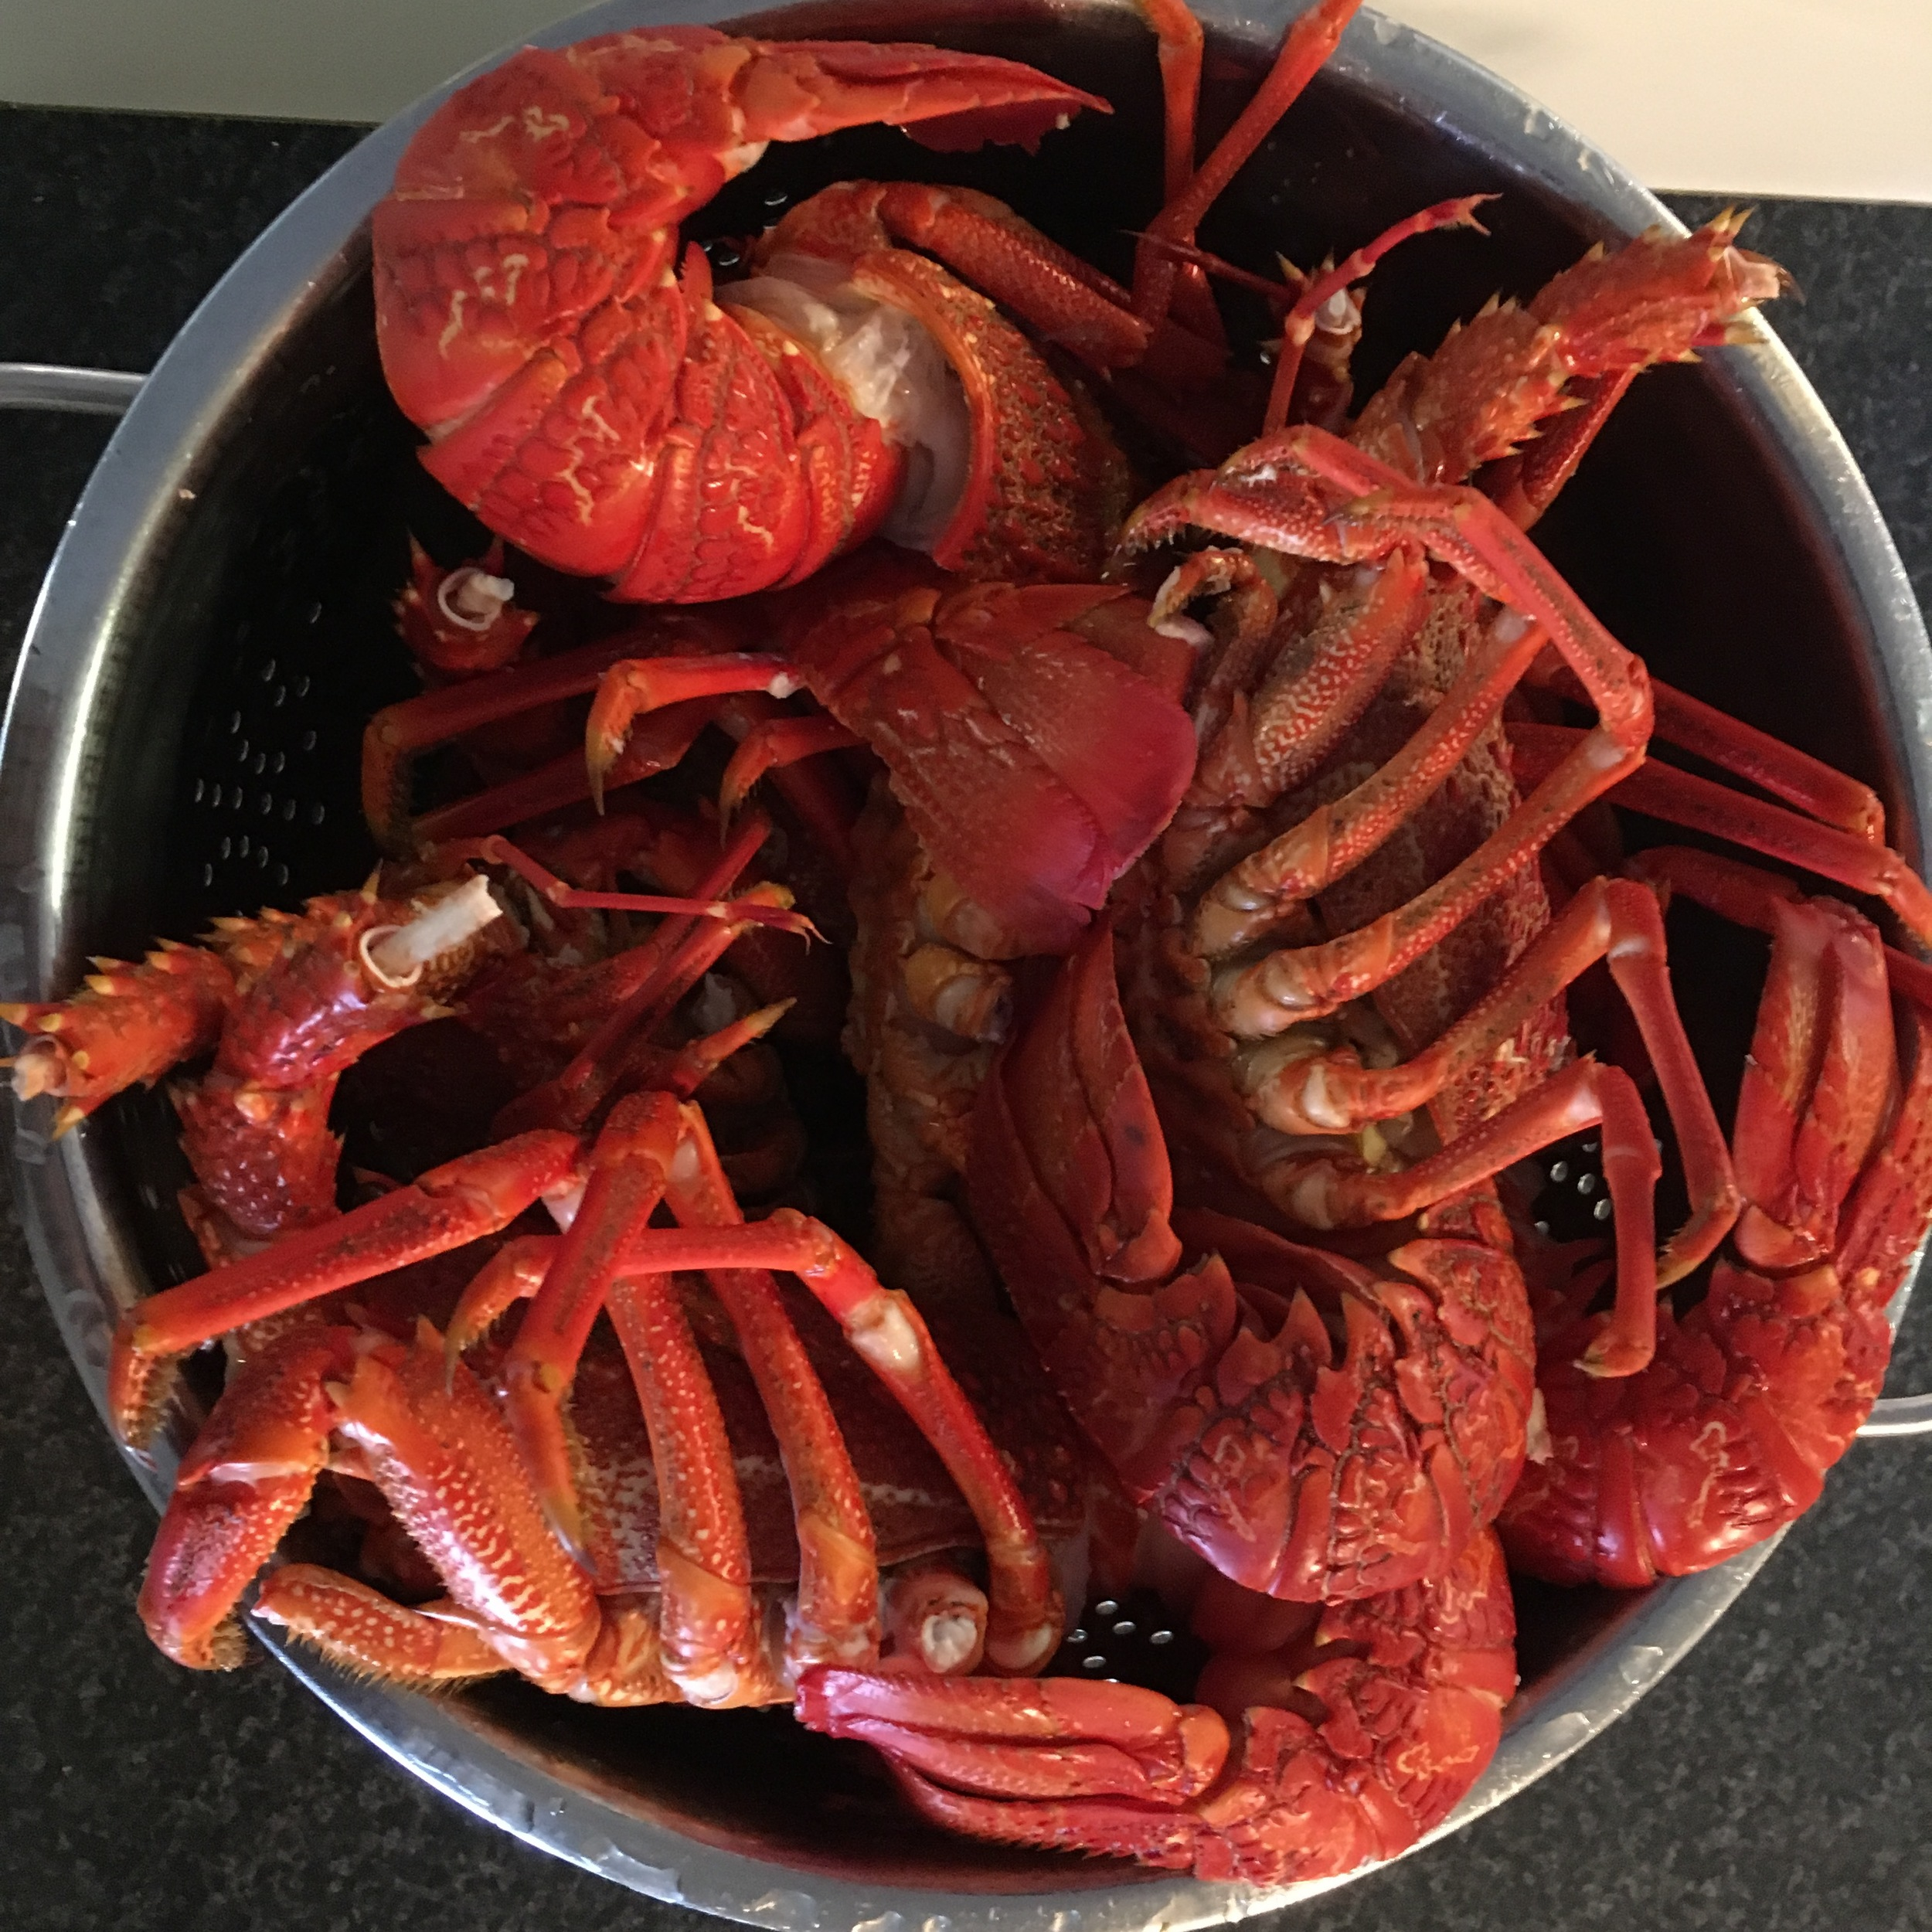 Crayfish for dinner on our boat